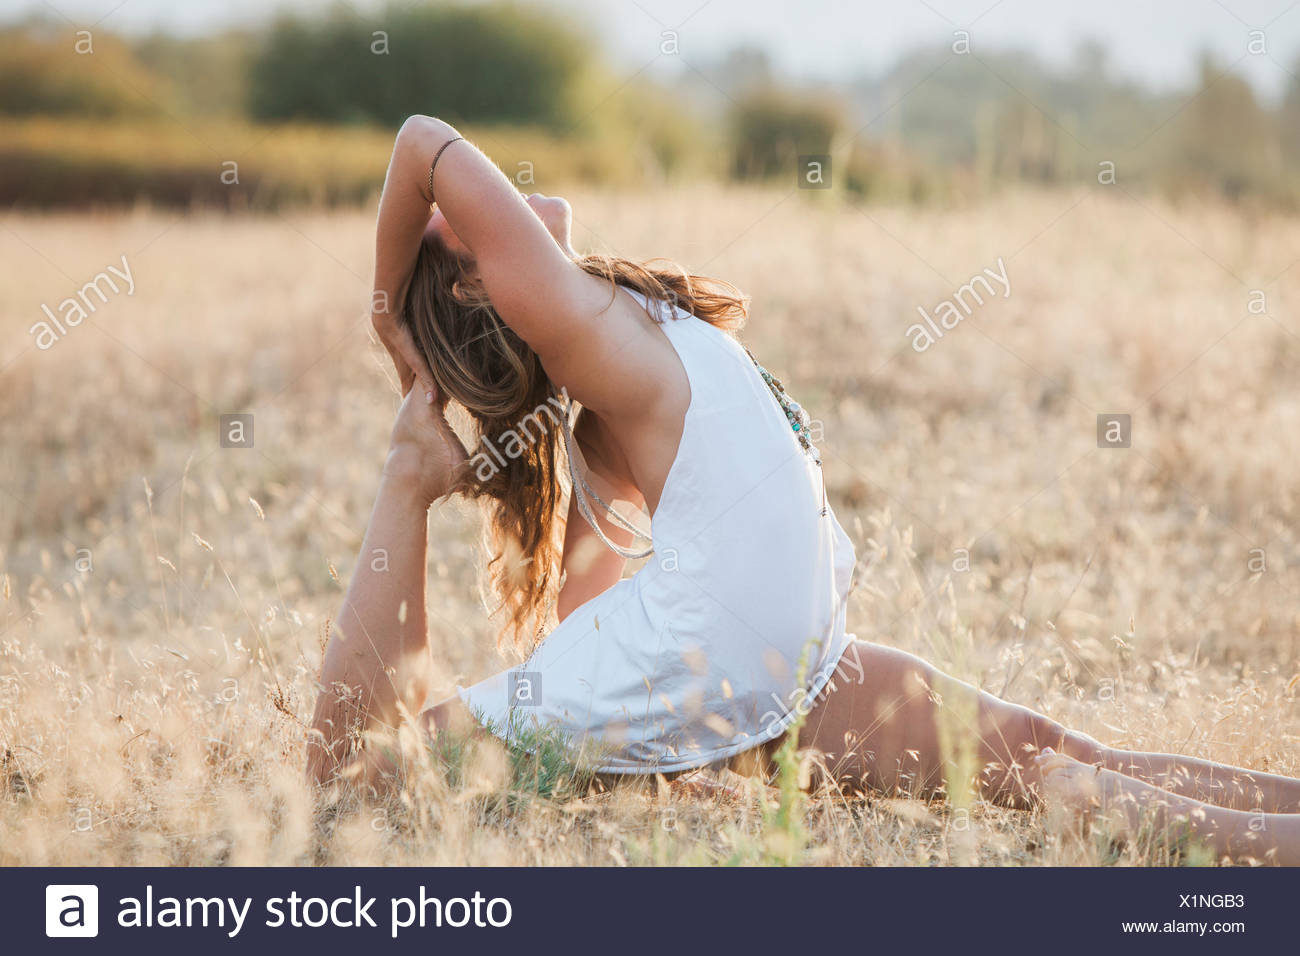 Boho woman in royal king pigeon pose in sunny rural field - Stock Image